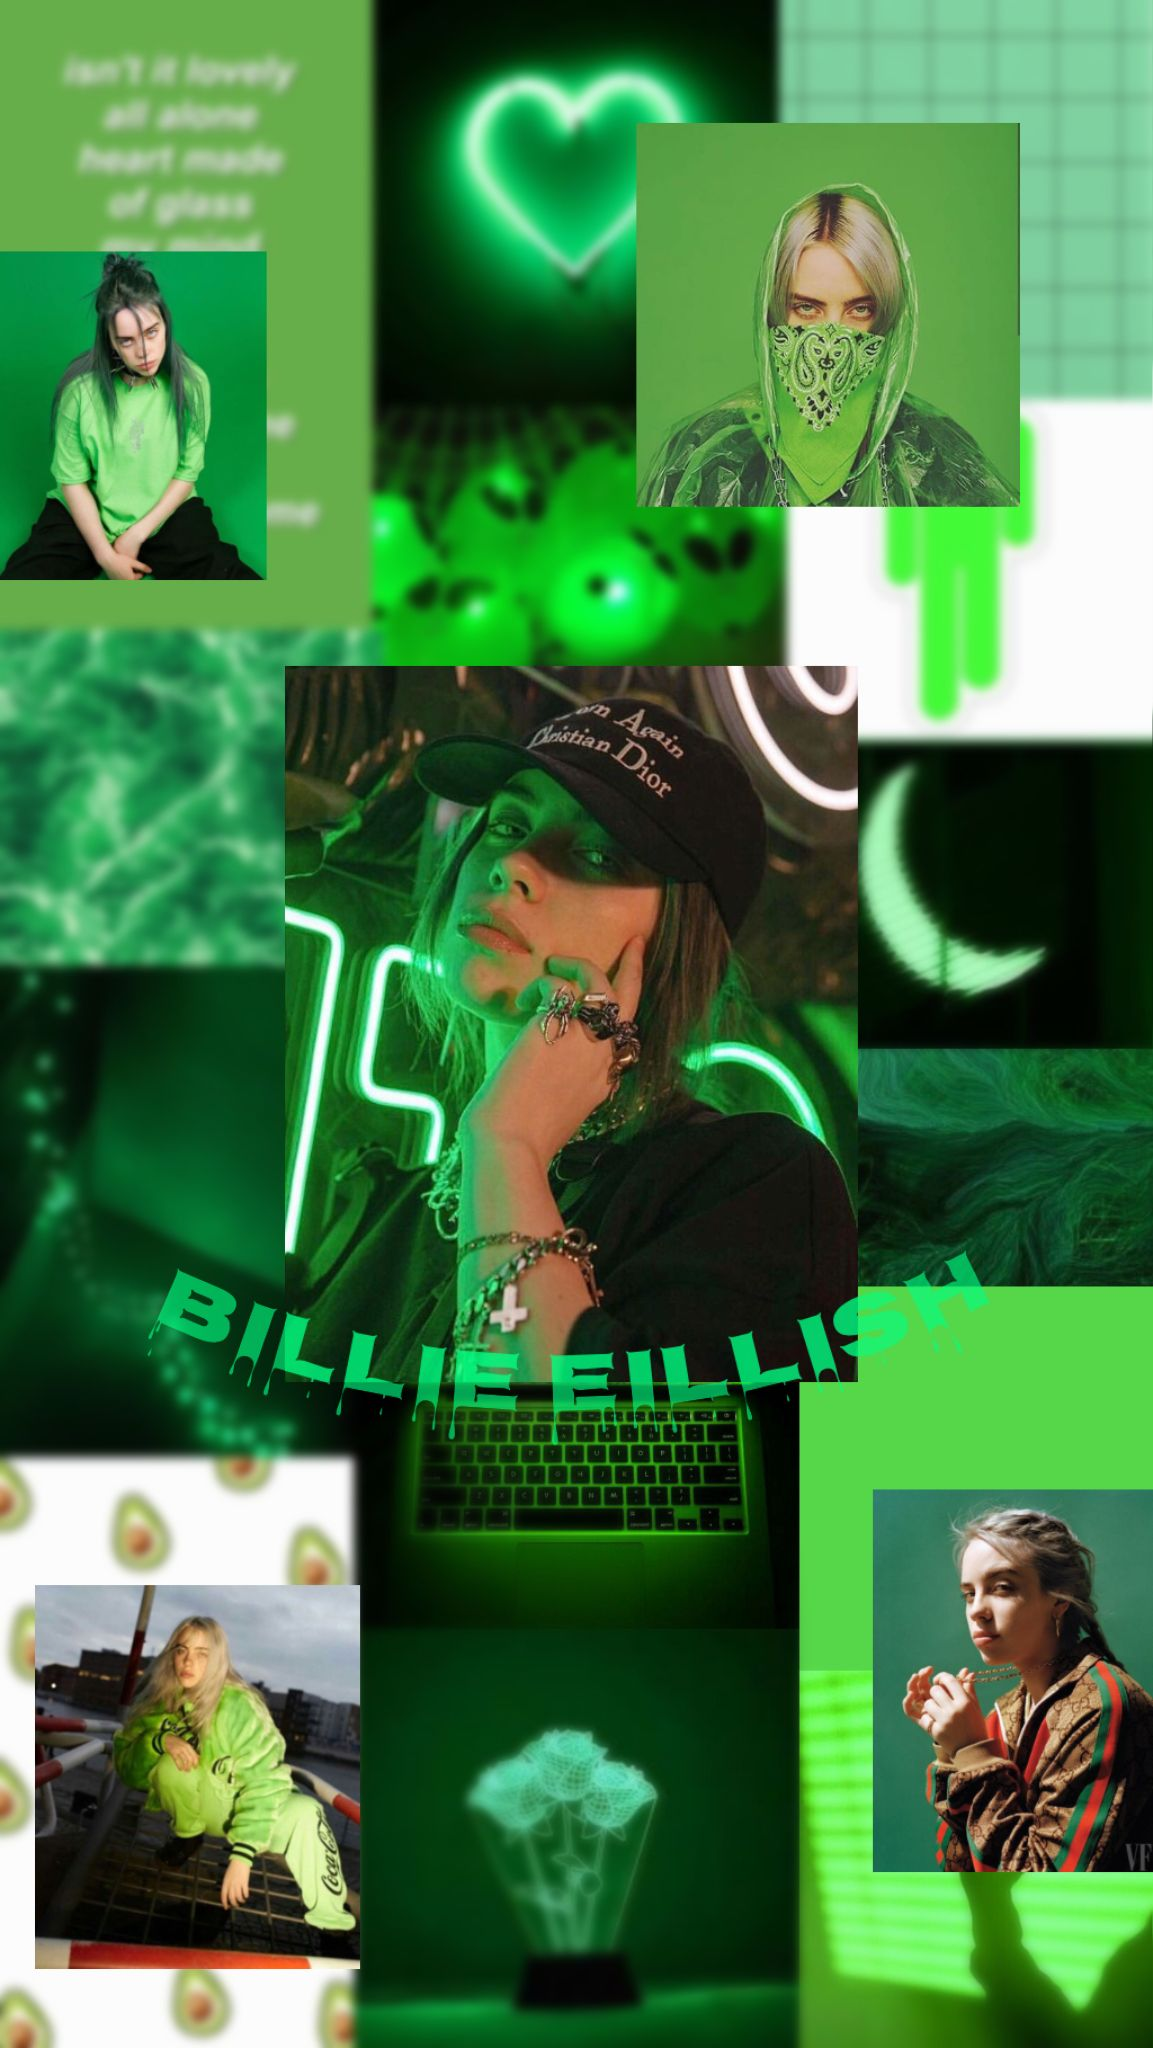 Billie Billie Billie Eilish Green Aesthetic